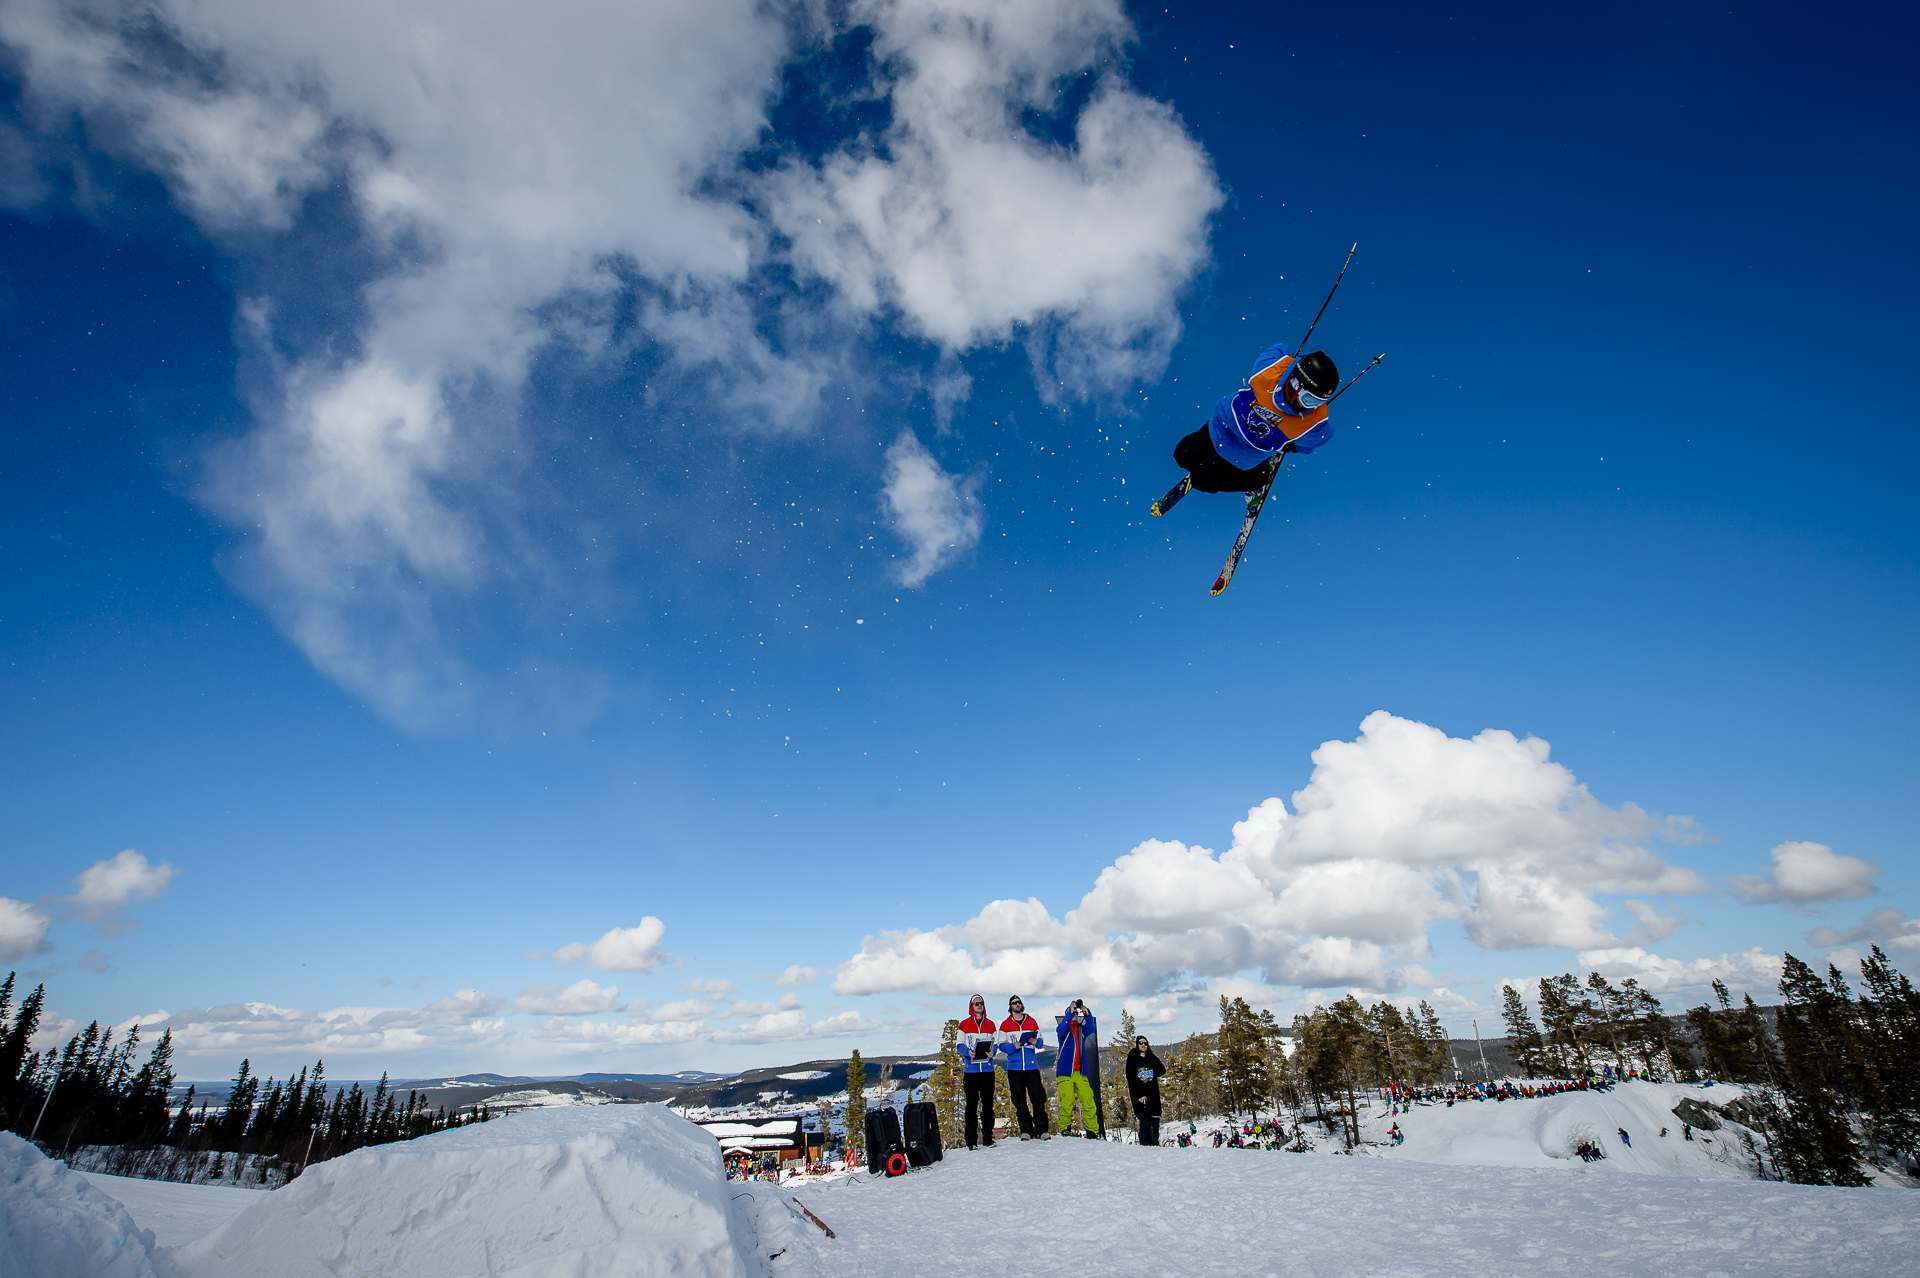 Klövjsö Big Air 2013